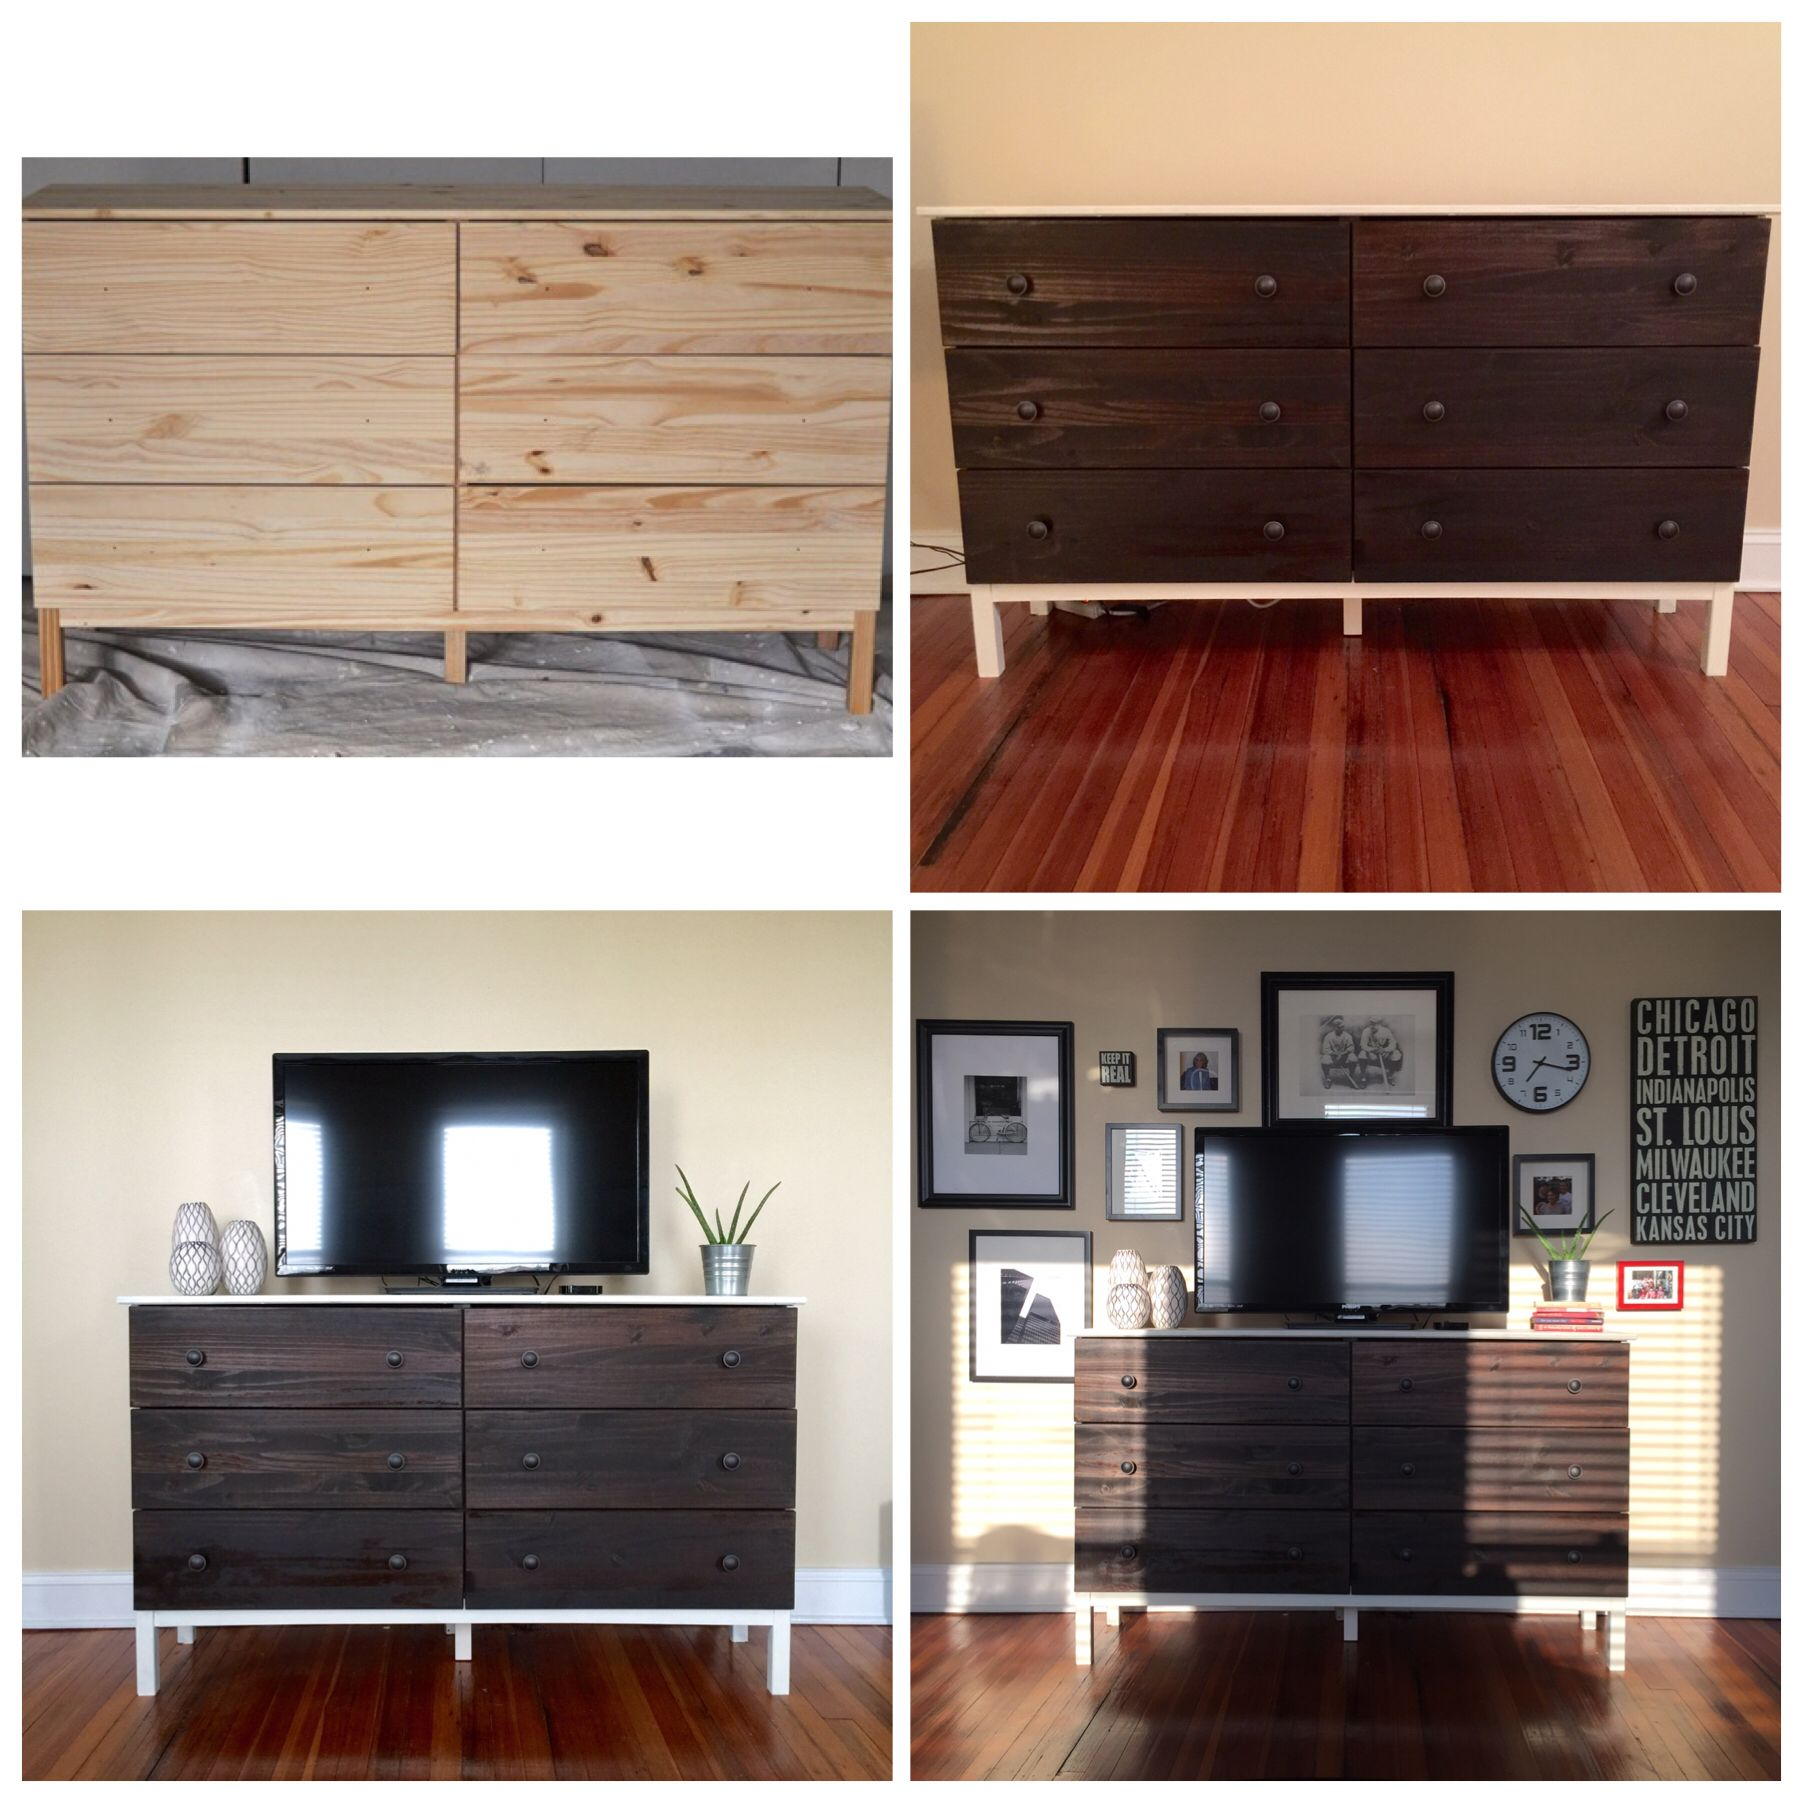 Ikea Tarva Dresser Hack Used As A Tv Stand With Gallery Wall I Think It Turned Out Pretty Well Ikea Tarva Dresser Home Decor Home [ 1803 x 1803 Pixel ]